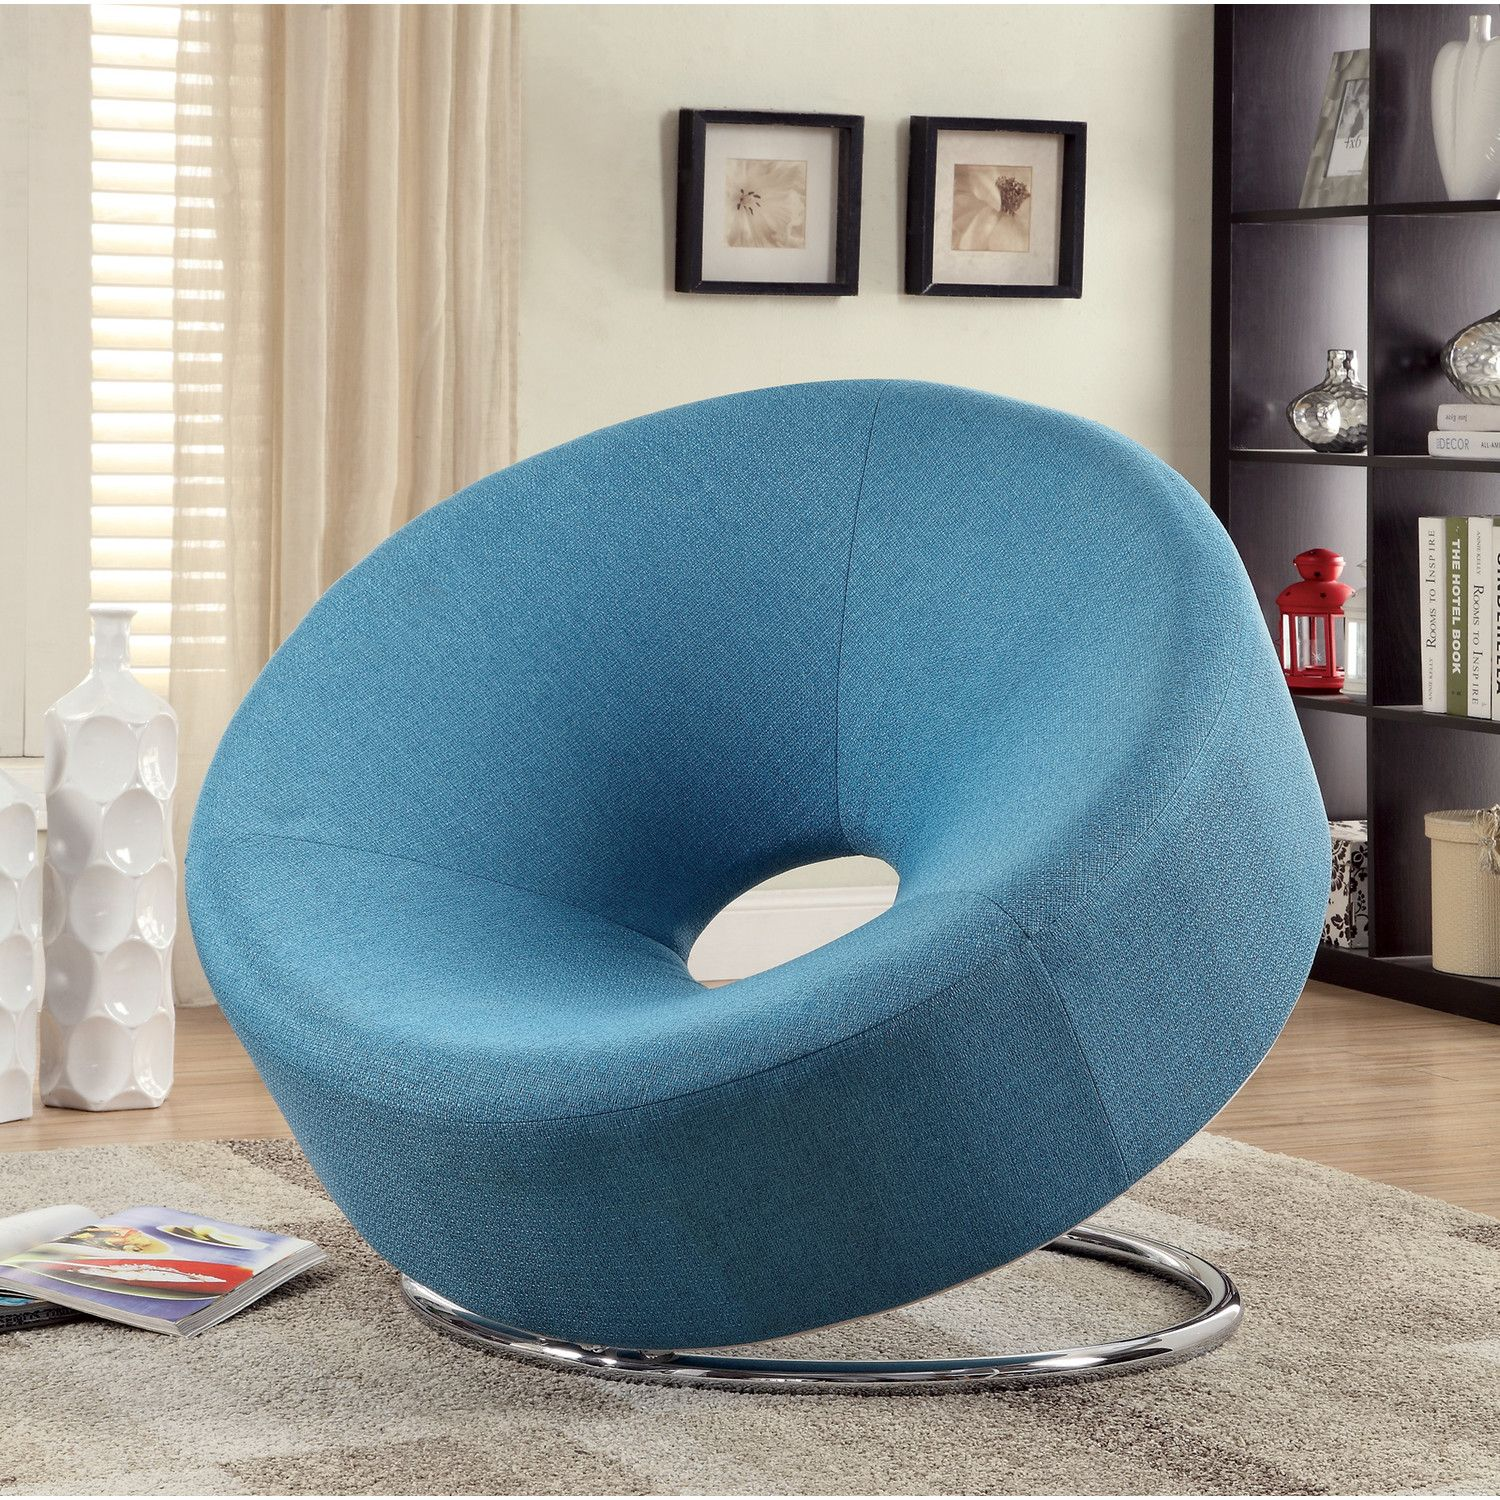 Exceptionnel Statuette Of Papasan Chair Ikea U2013 Way To Opt The Fall Atmosphere